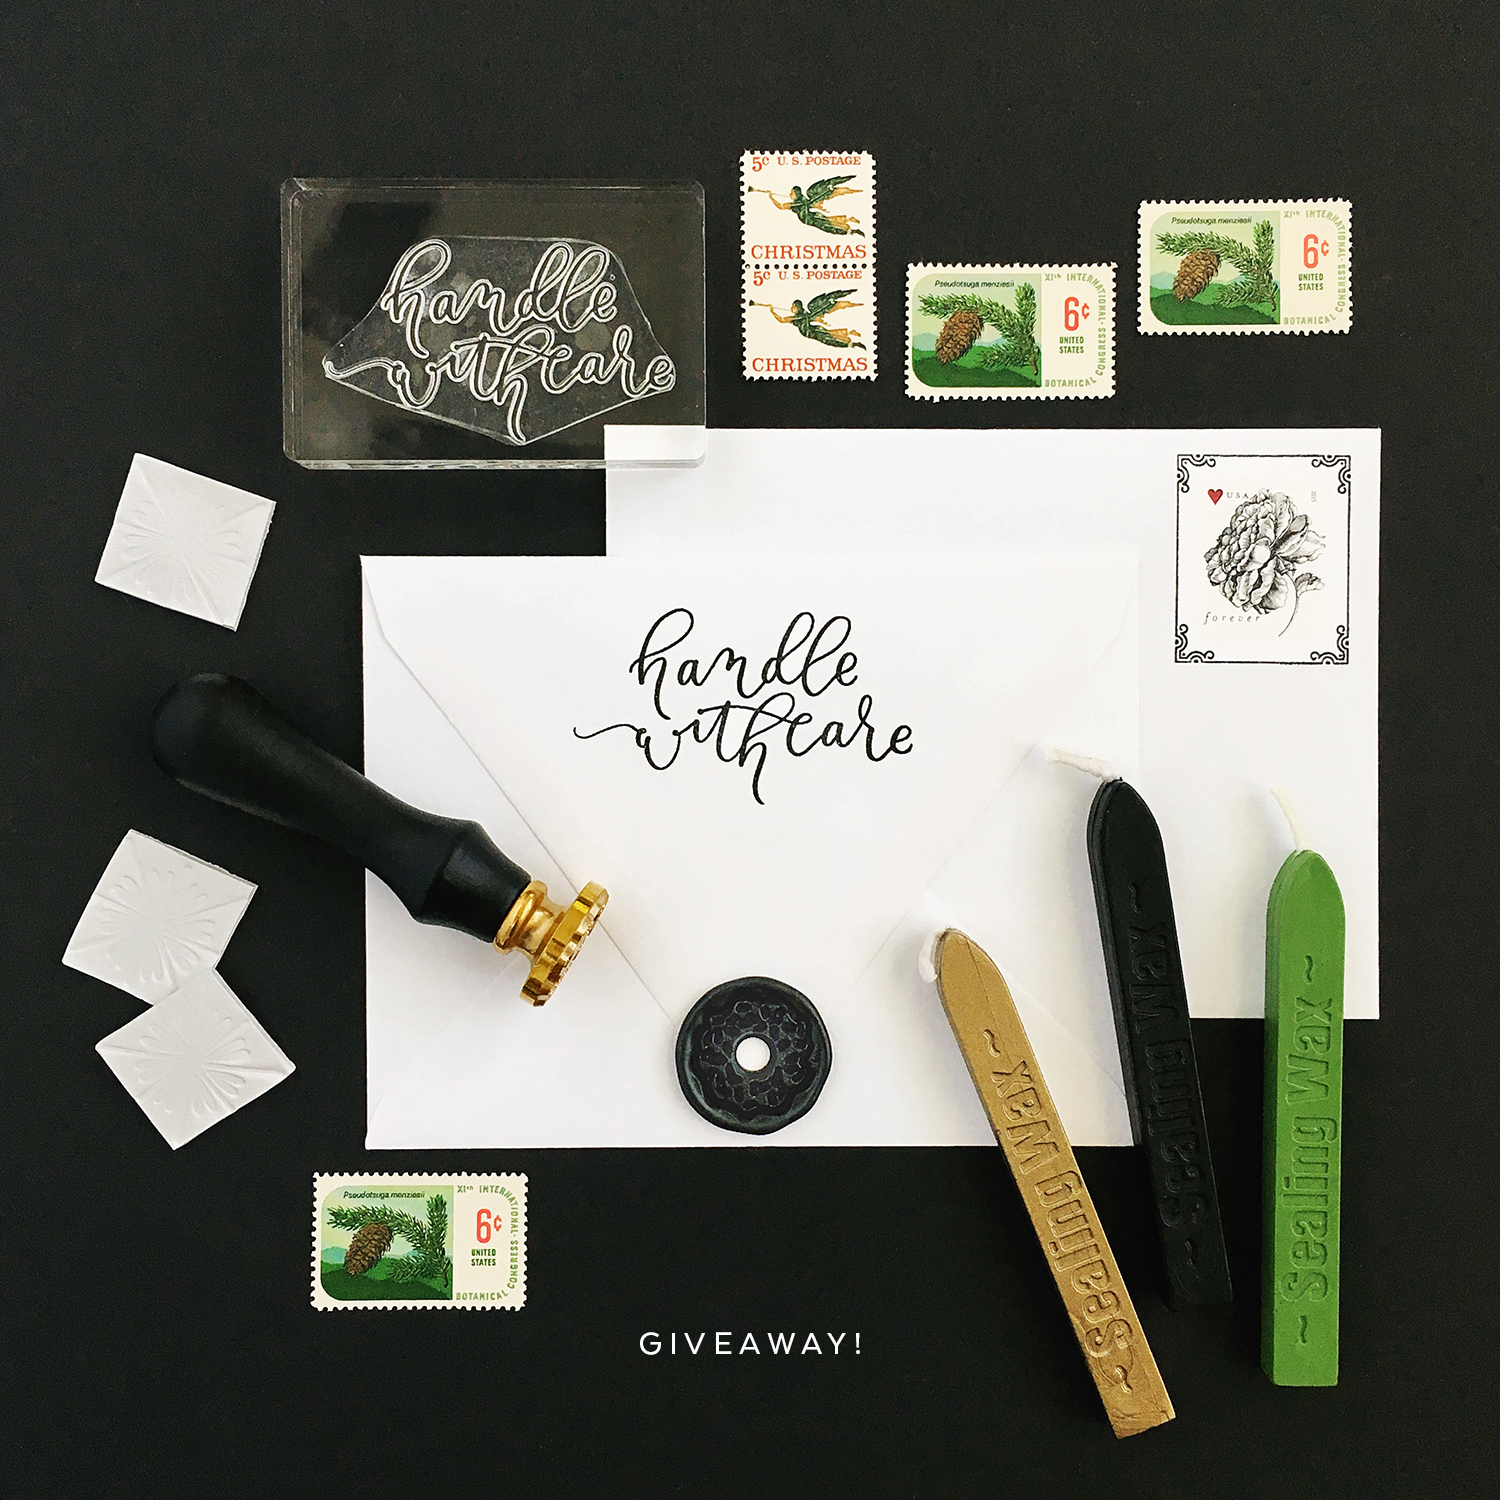 """Pretty Peas Paperie CHRISTMAS GIVEAWAY   Enter to win a wax seal stamp (and wax), a hand-lettered """"handle with care"""" stamp, and an envelope liner kit!"""